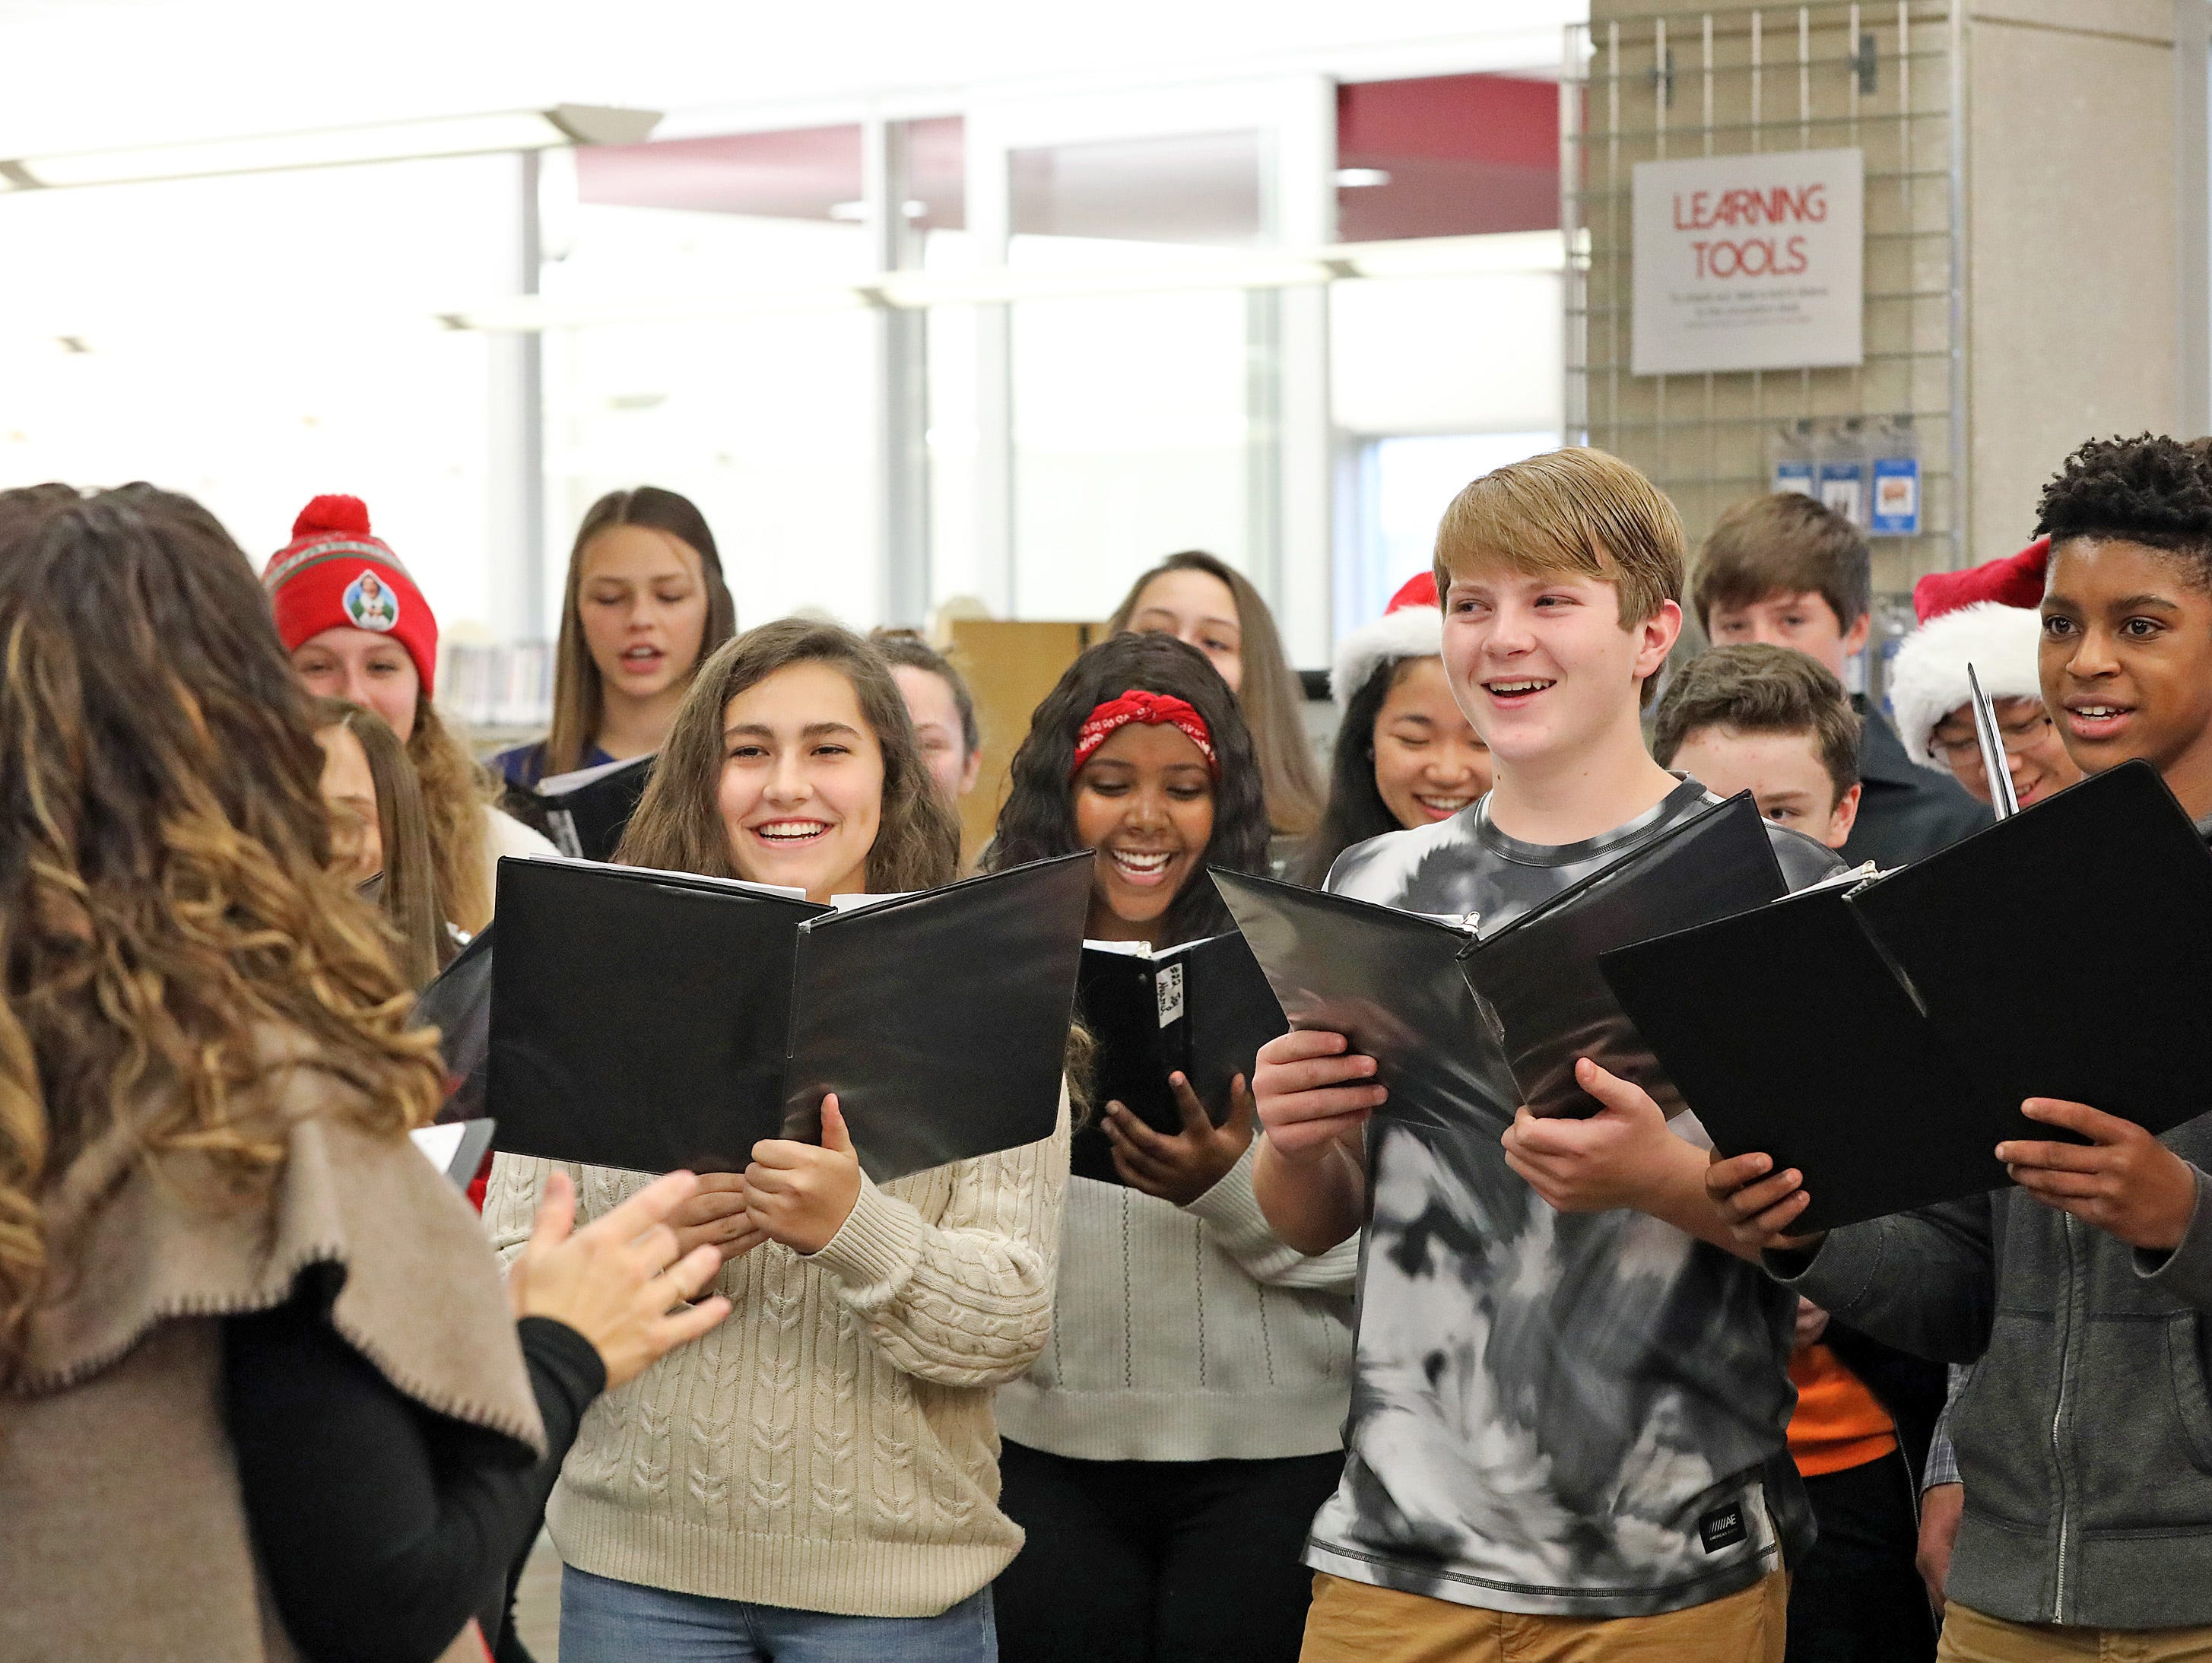 Vocal Music Teacher Laura Grimm directs the Johnston Middle School Ninth Grade Chamber Choir during Holidays in Johnston on Saturday, Dec. 1, 2018 at the Johnston Public Library.